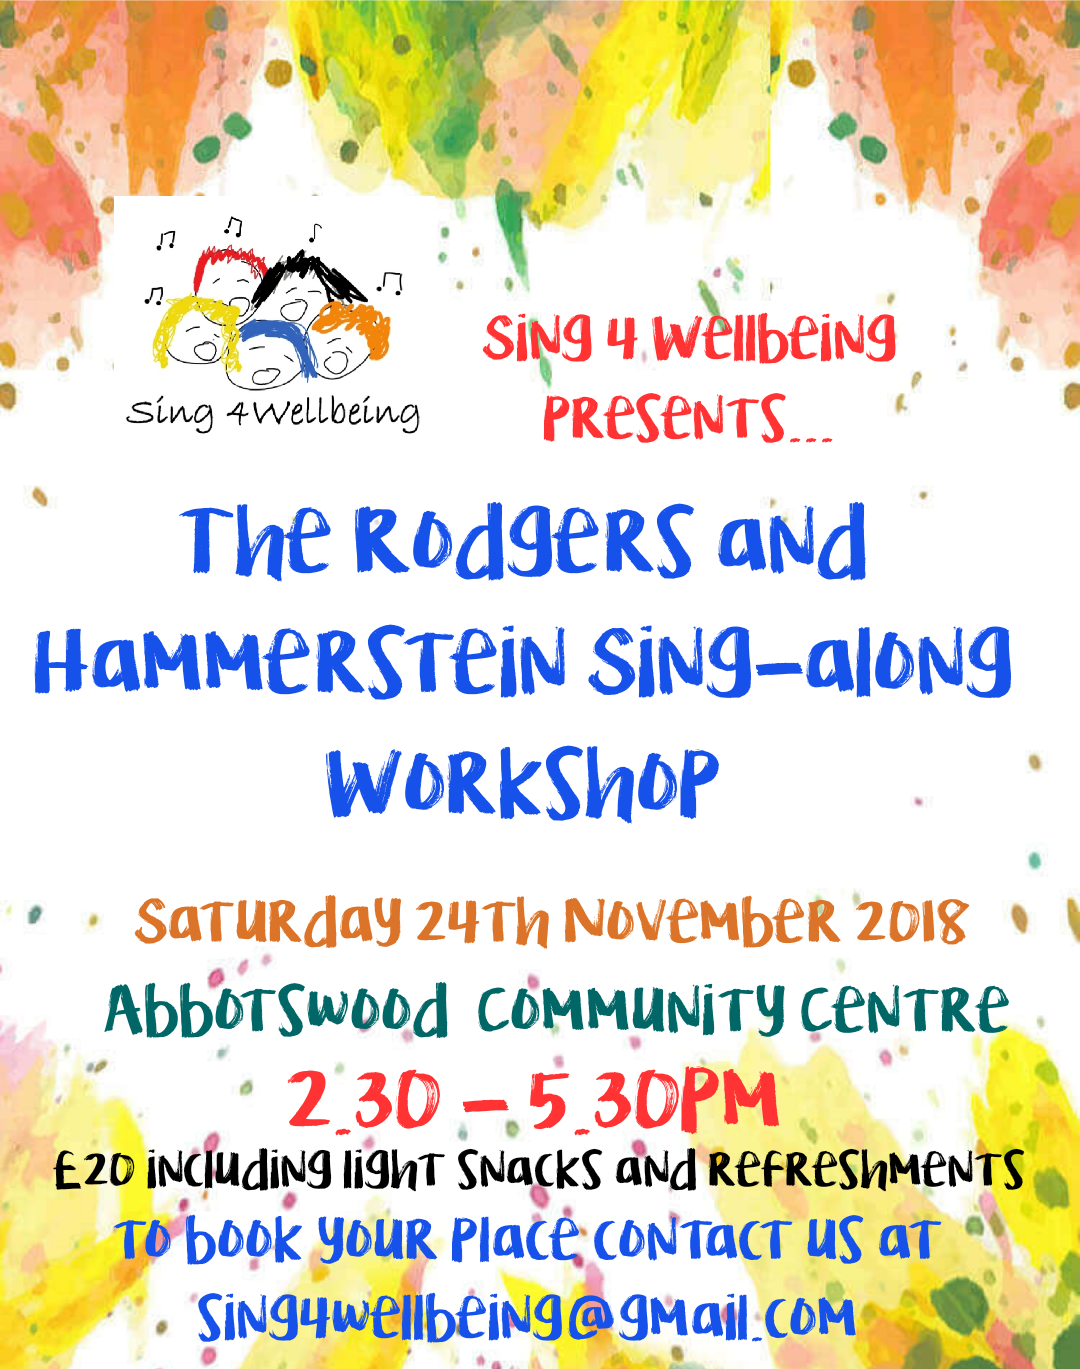 The Rodgers And Hammerstein Sing-Along Workshop